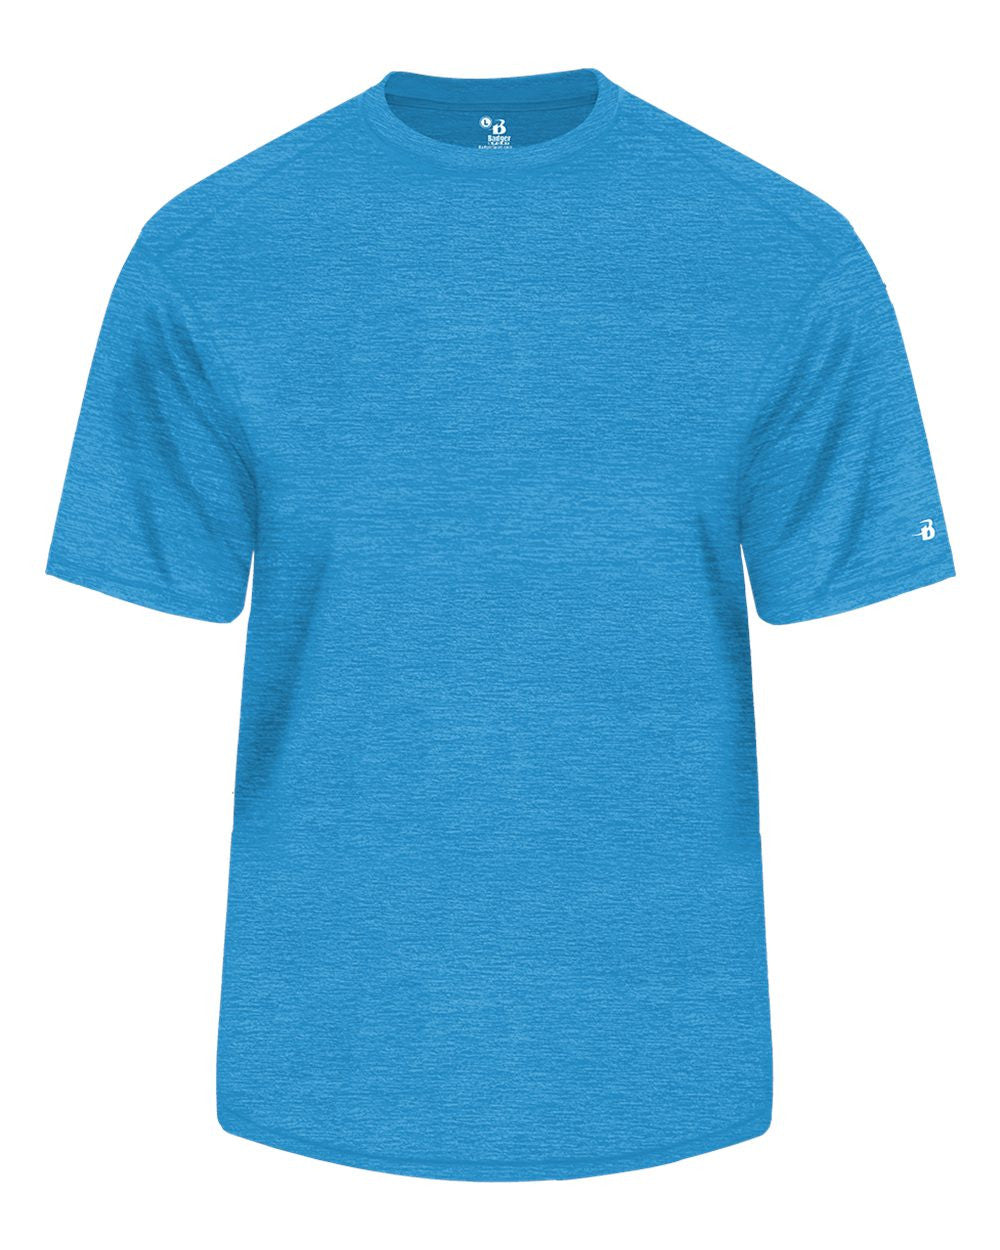 Vienna Lacrosse OUTLAWS Men's SWAG Tonal Blend Mens Tee - Columbia Blue